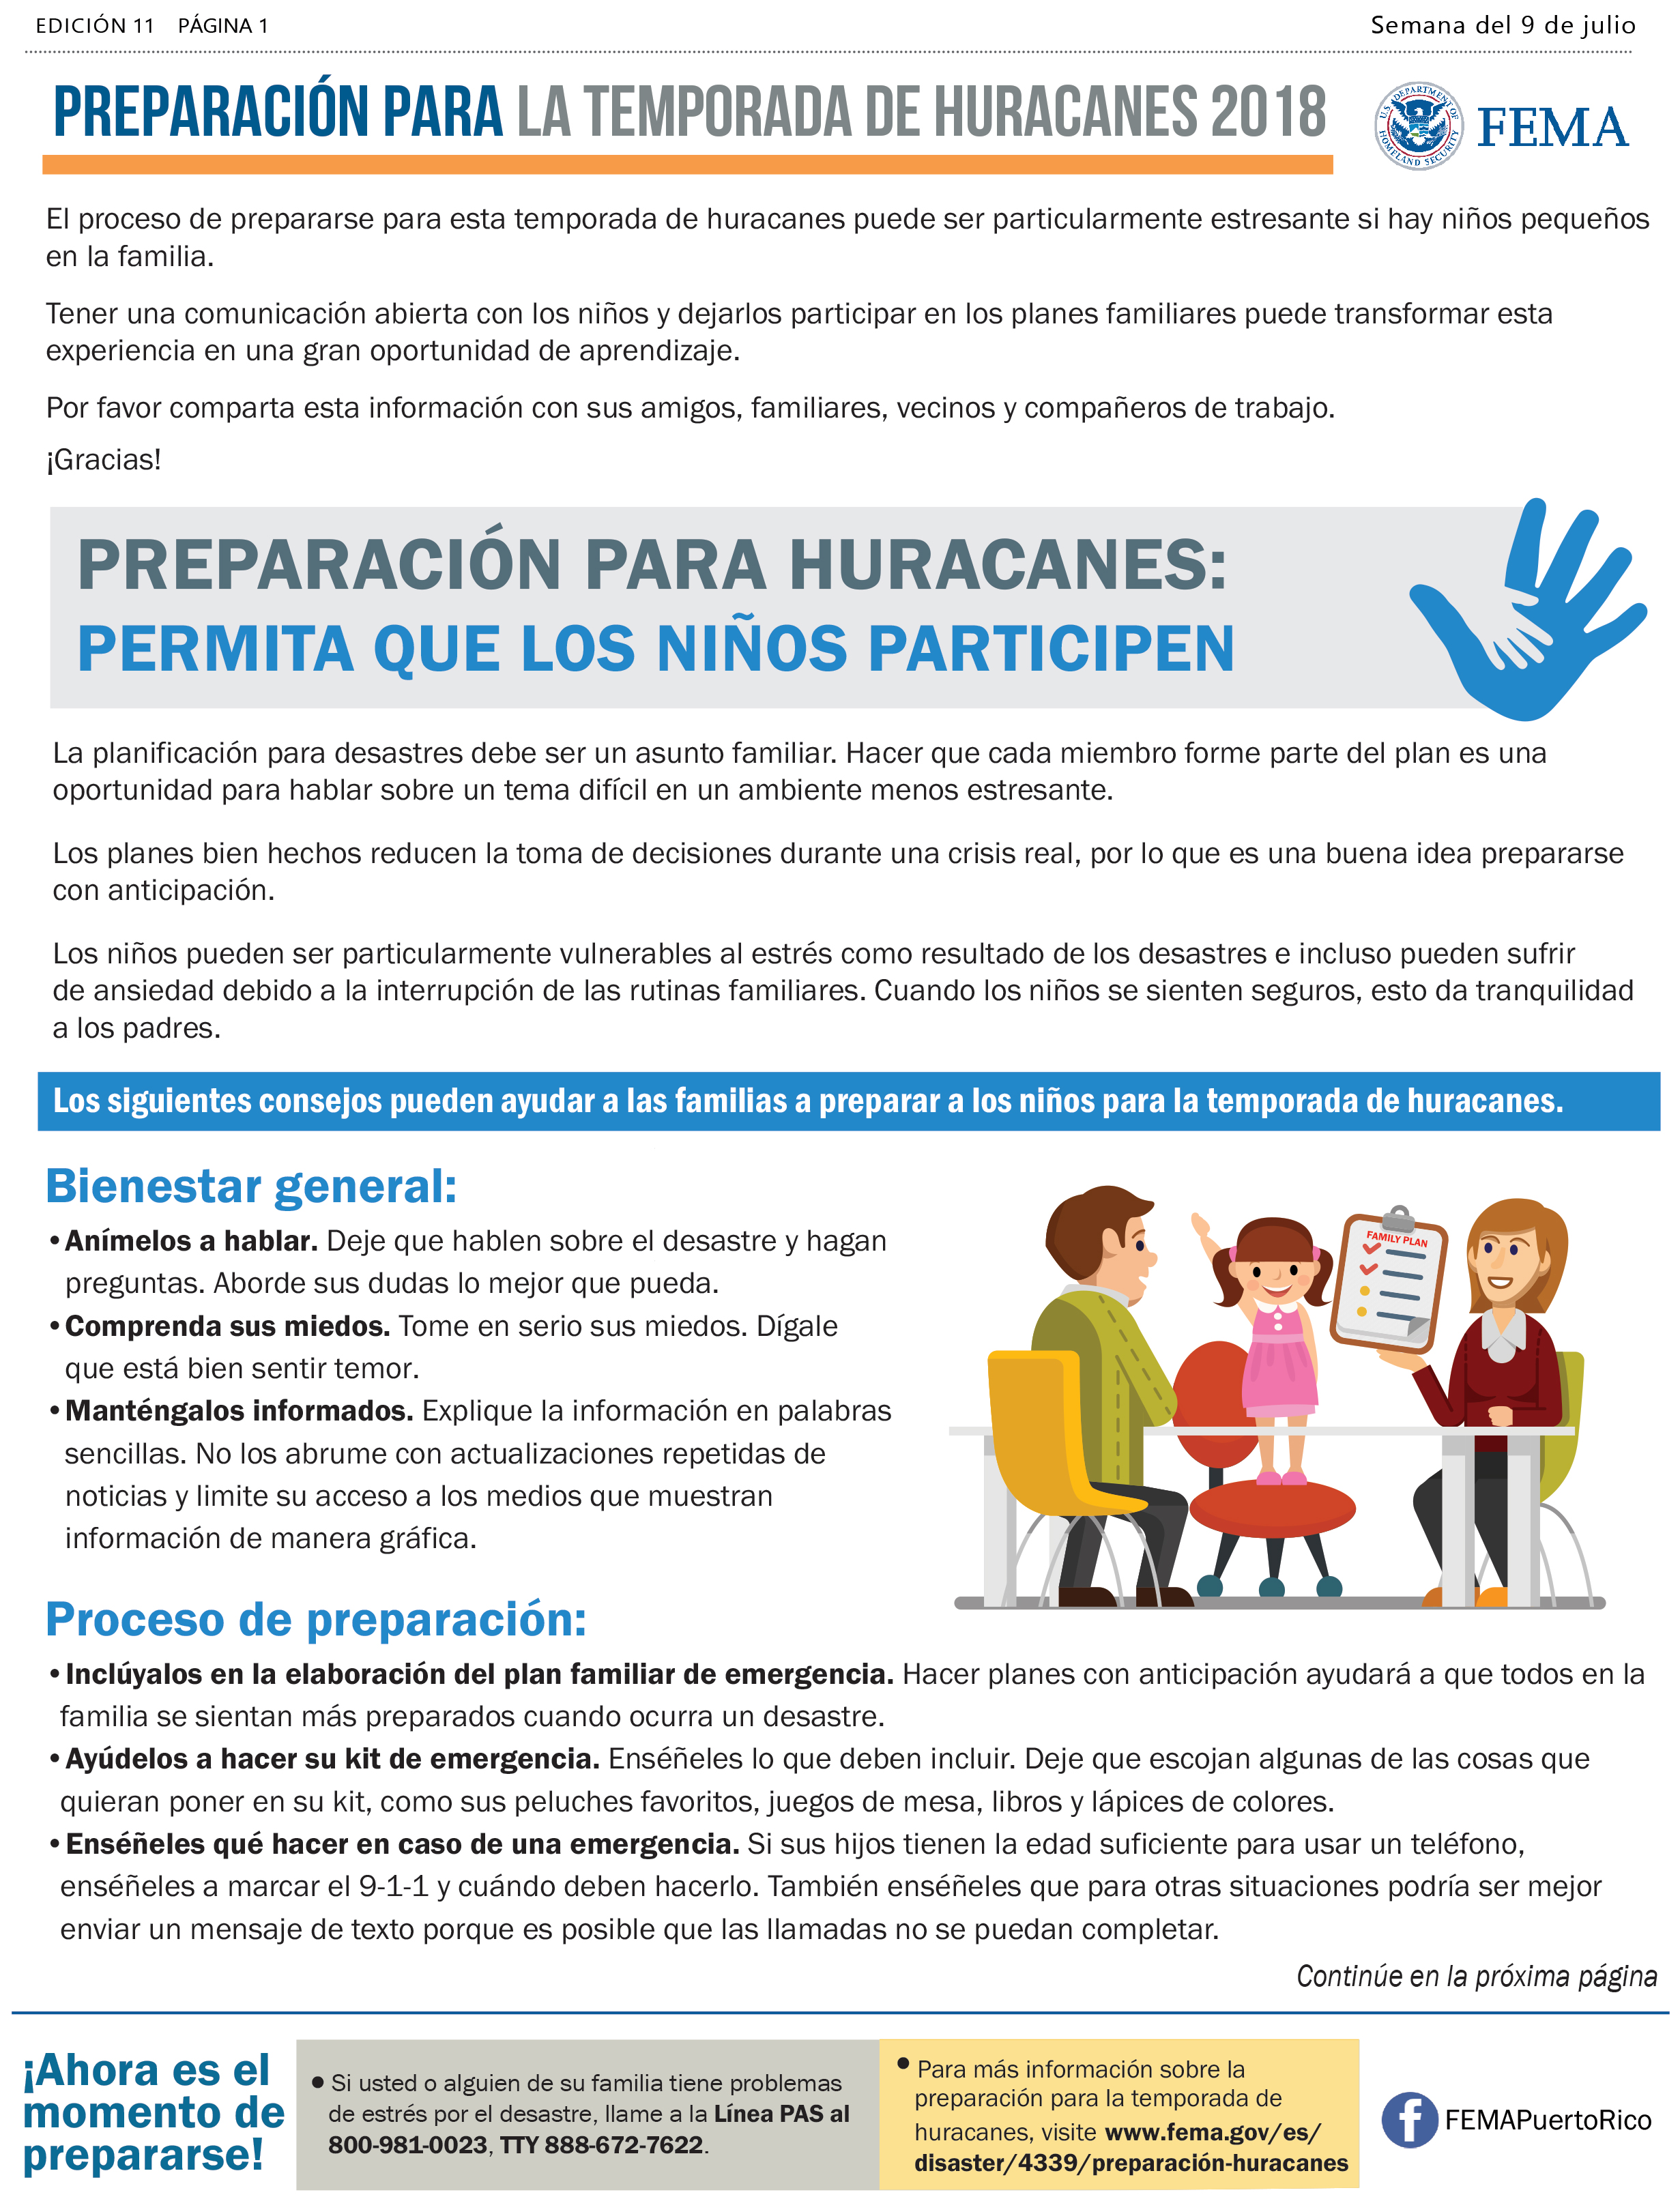 2018 Preparedness Spanish.jpg